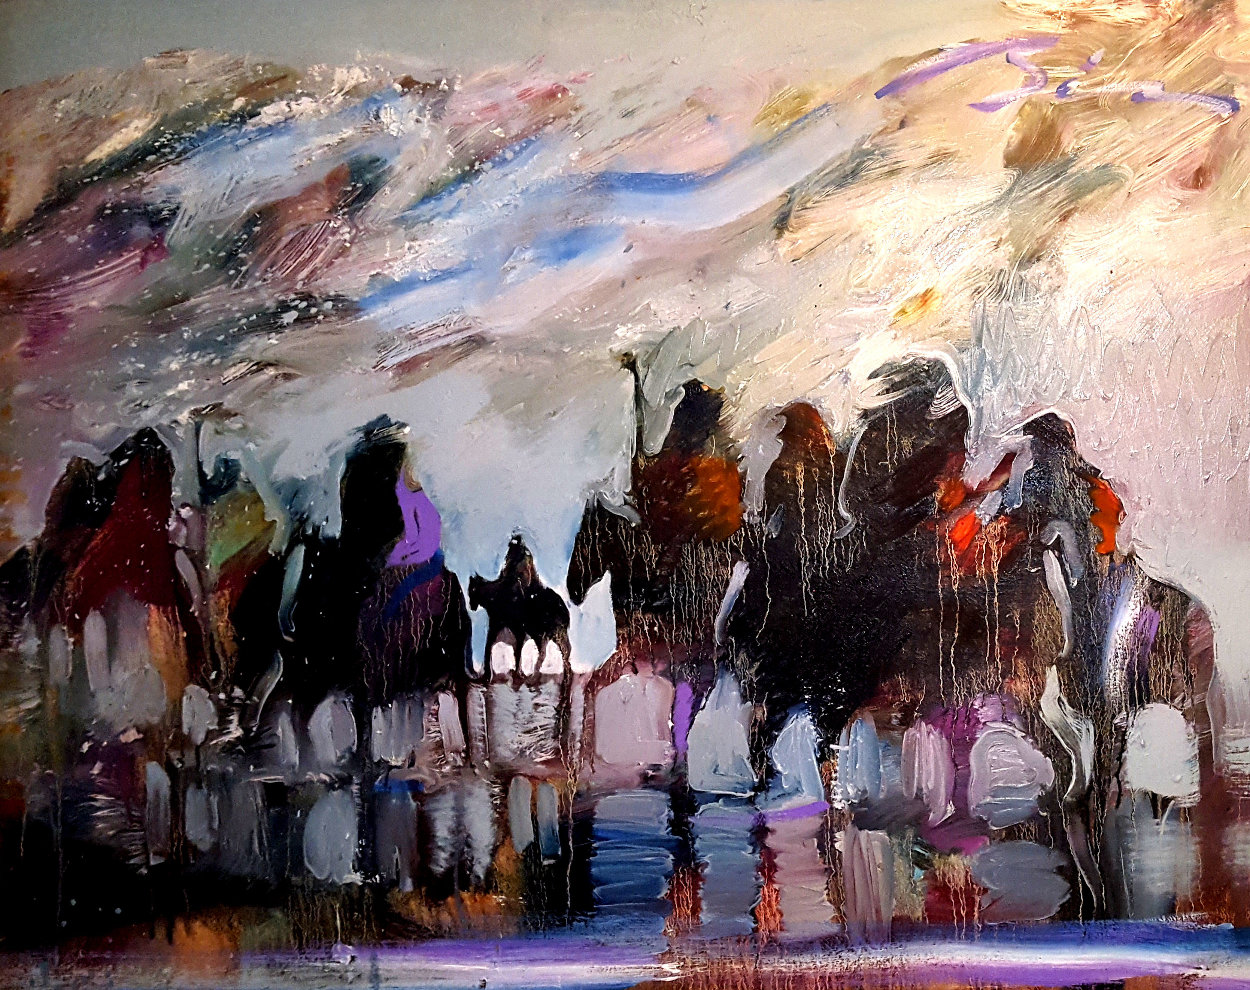 Reflections of Ancestral Warriors 30x39 1991 Original Painting by Earl Biss